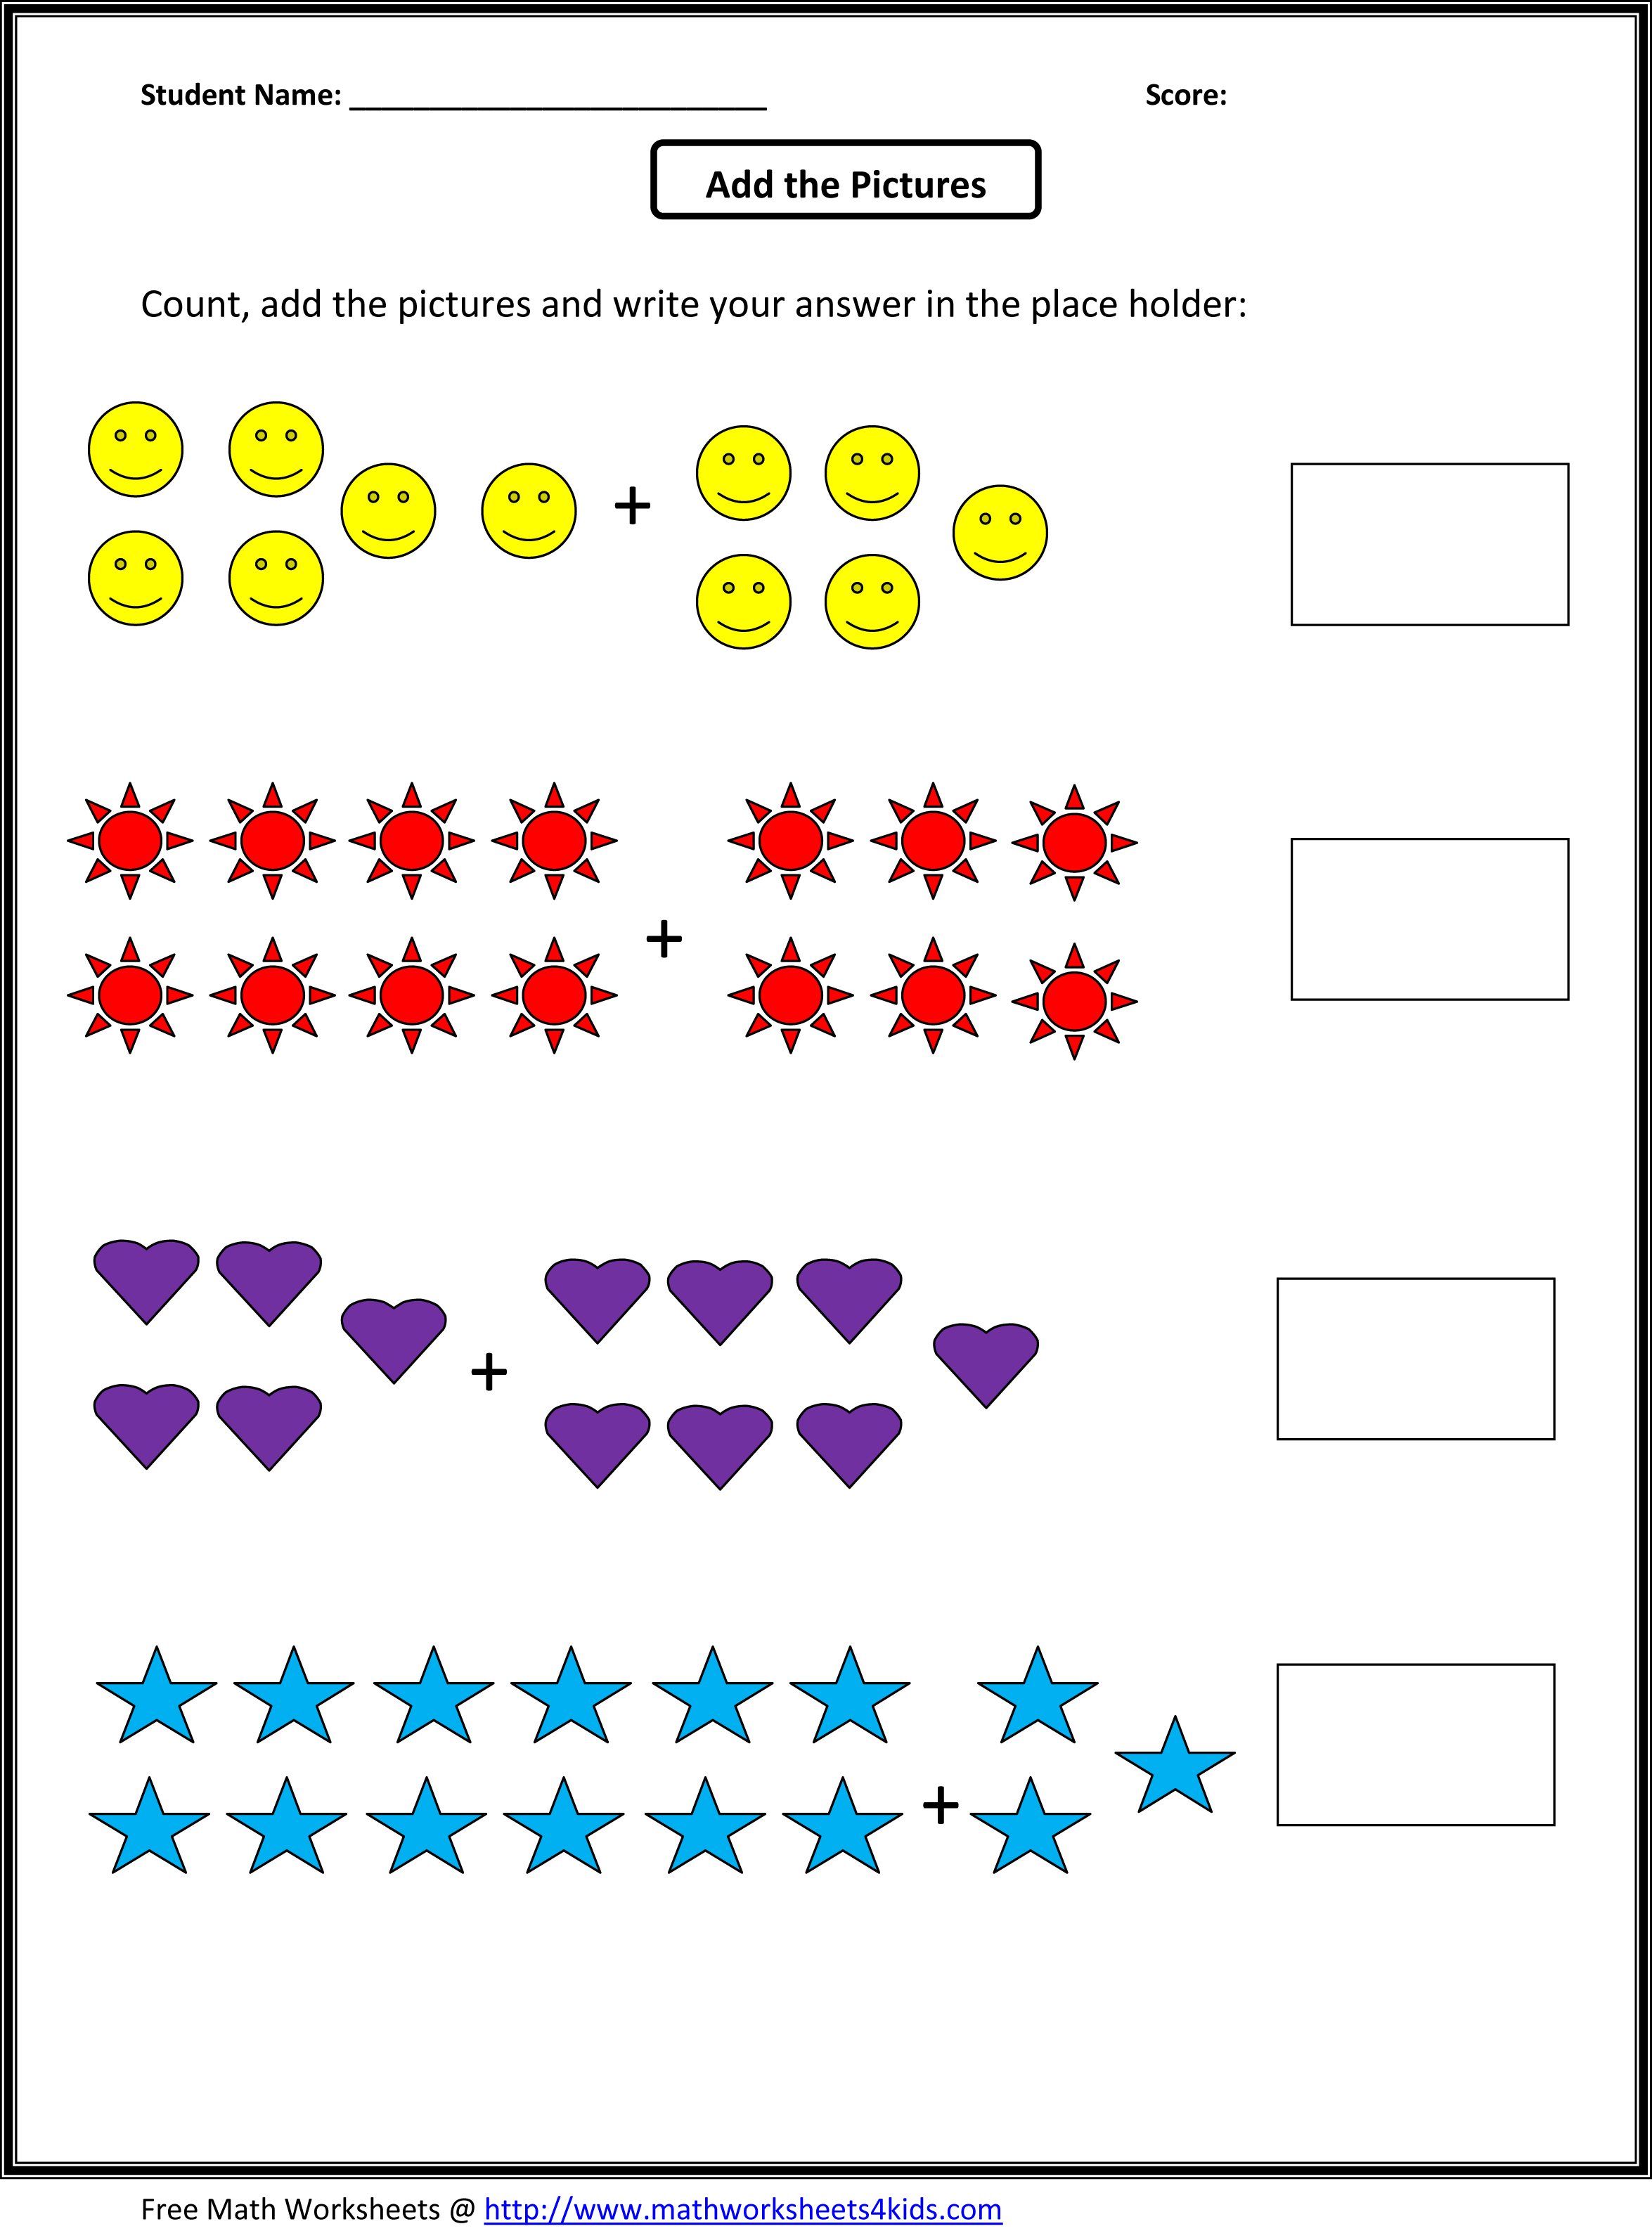 Proatmealus  Nice Grade  Maths Worksheet  Reocurent With Extraordinary Math Worksheets For St Grade Free  Reocurent With Extraordinary Double Replacement Reaction Worksheet Also Volume Worksheet In Addition Transcription And Translation Practice Worksheet Answers And What Is A Metaphor Worksheet As Well As Multiplication Tables Worksheet Additionally Solving Logarithmic Equations Worksheet From Reocurentcom With Proatmealus  Extraordinary Grade  Maths Worksheet  Reocurent With Extraordinary Math Worksheets For St Grade Free  Reocurent And Nice Double Replacement Reaction Worksheet Also Volume Worksheet In Addition Transcription And Translation Practice Worksheet Answers From Reocurentcom